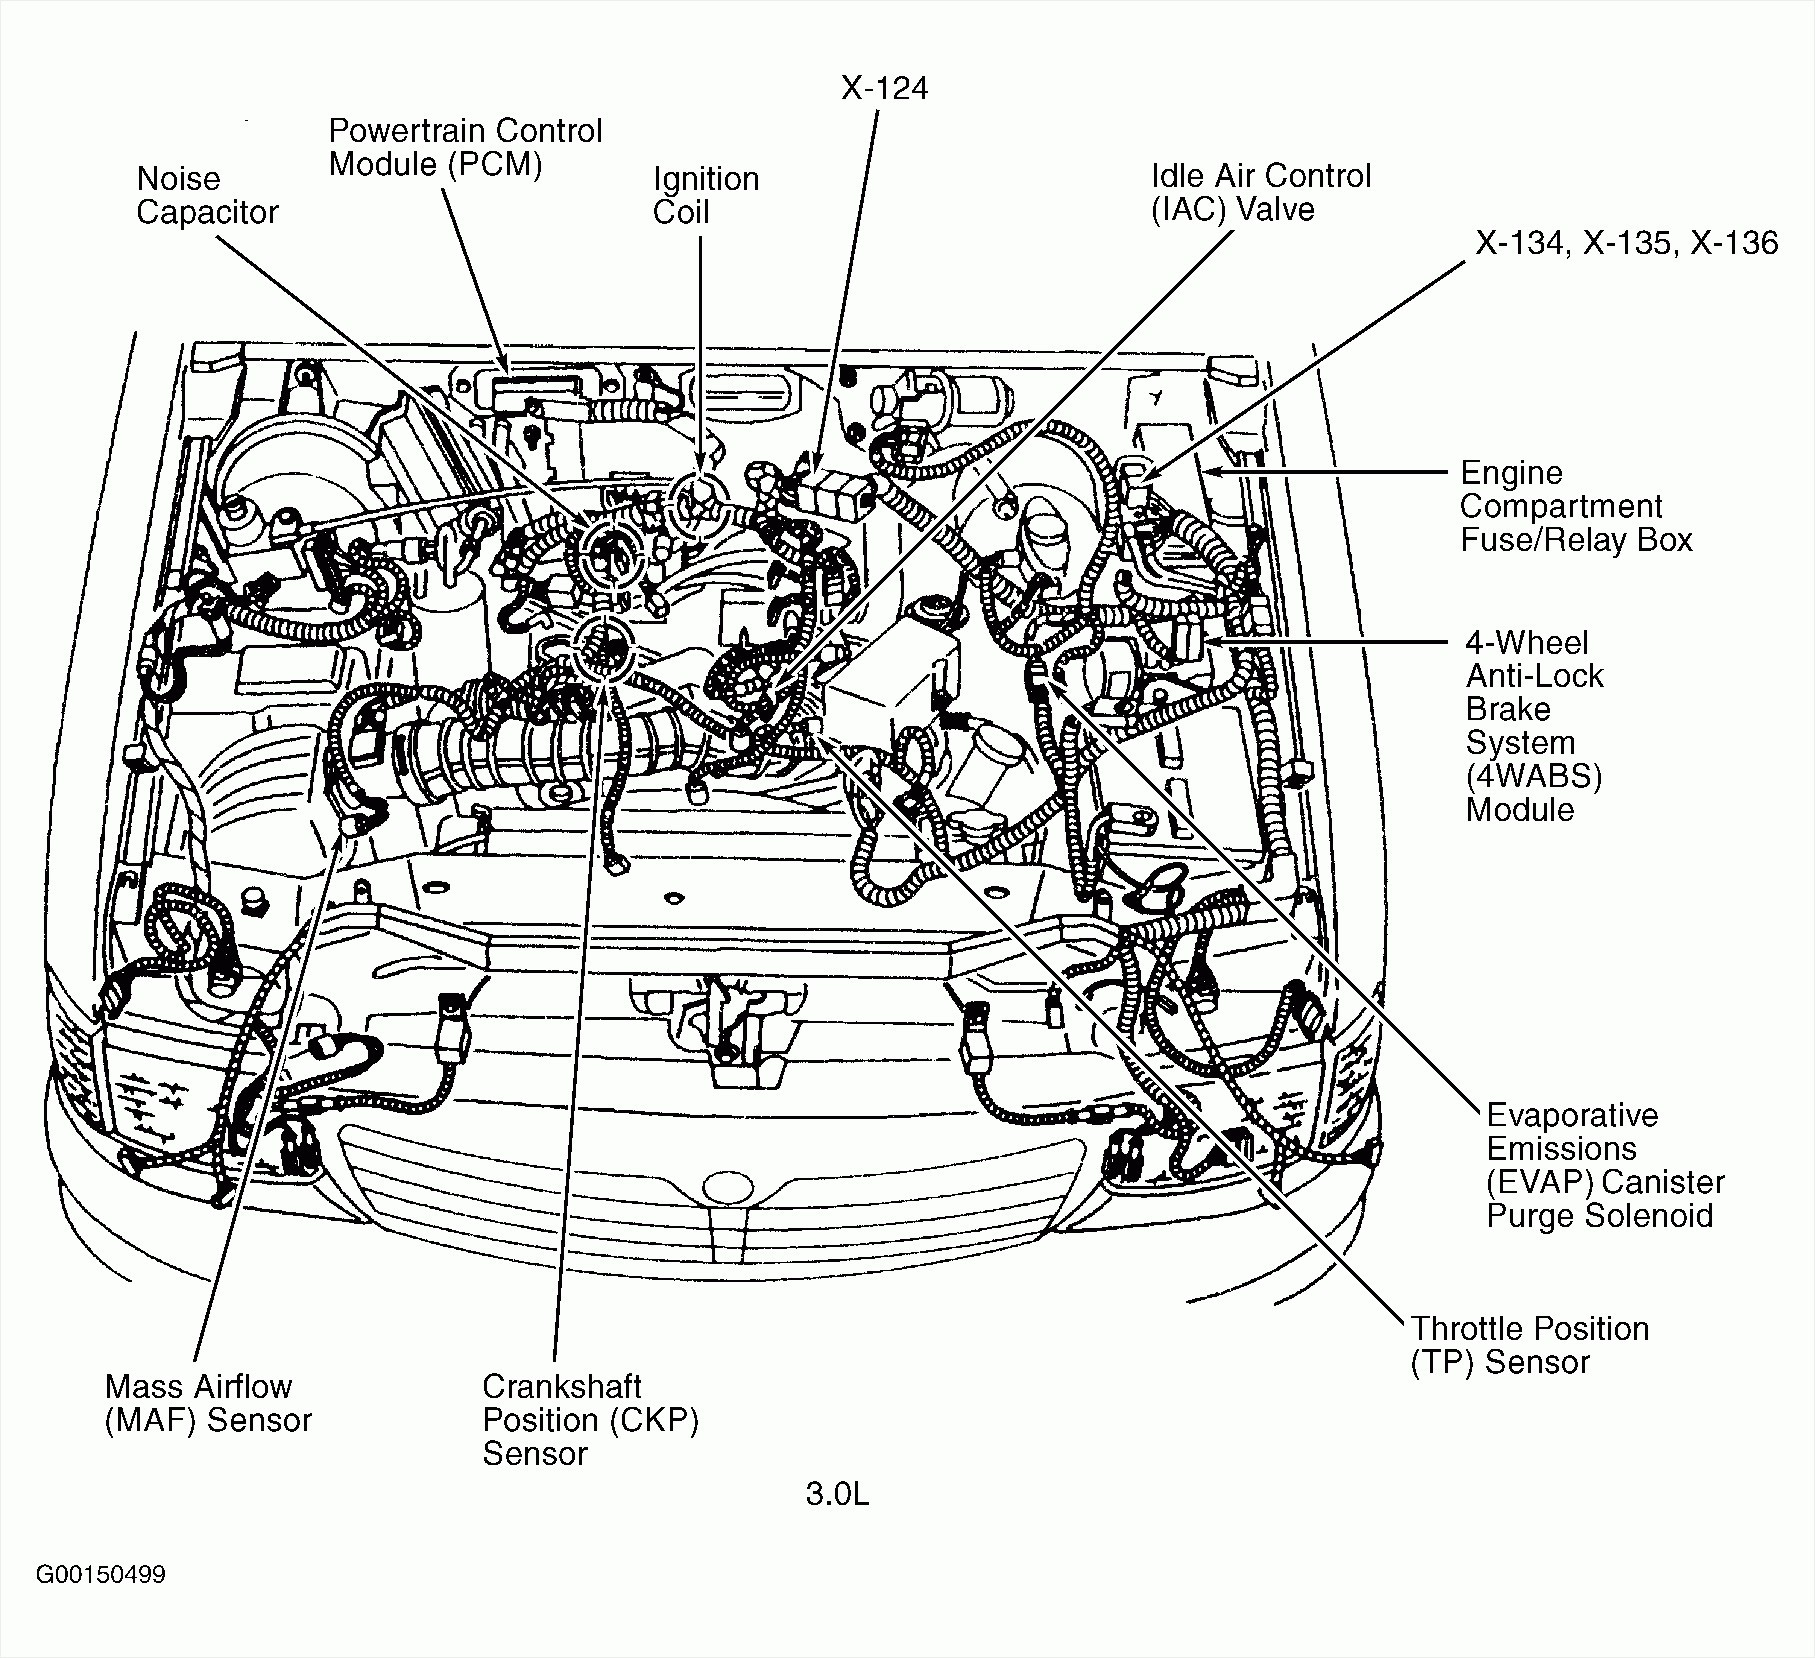 hight resolution of 91 mazda protege engine diagram wiring diagram paper mazda b2000 electrical diagram moreover mazda protege engine diagram